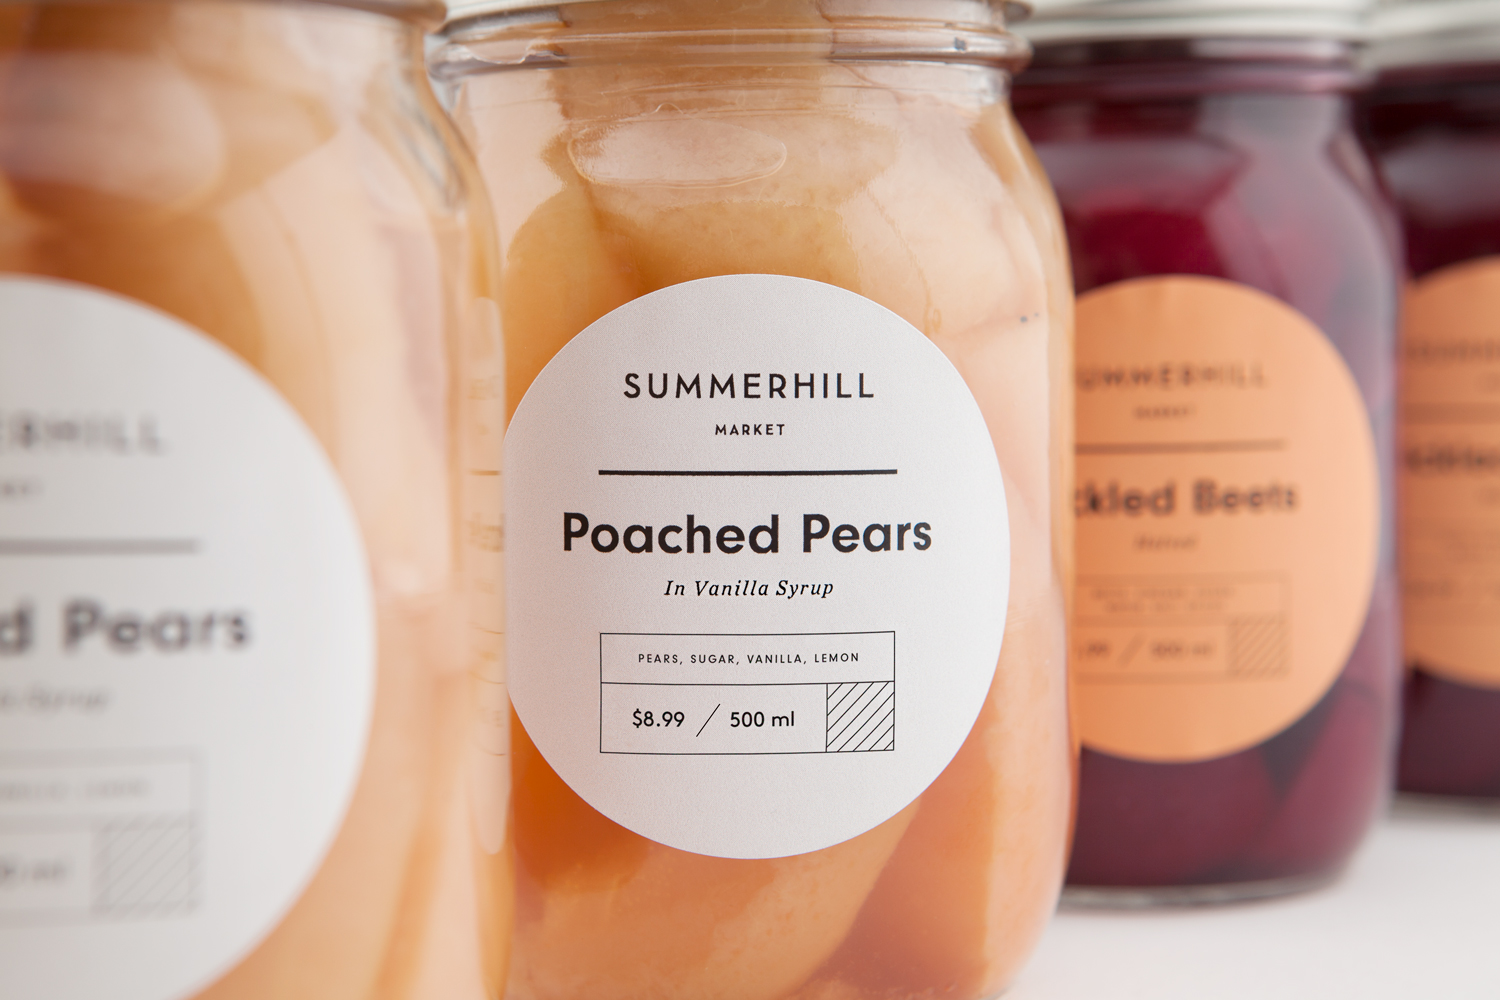 Branding and pear packaging designed by Canadian studio Blok for Toronto based boutique grocery store Summerhill Market